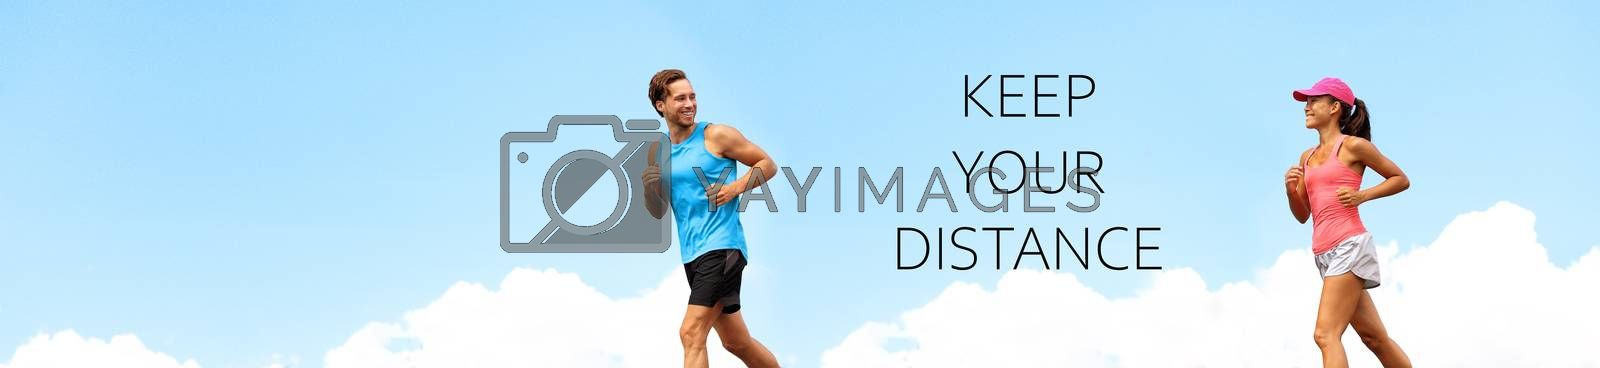 Runners training running outdoor exercise fitness people walking panoramic banner with text message KEEP YOUR DISTANCE for social distancing COVID-19. Healthy active couple man woman jogging header by Maridav